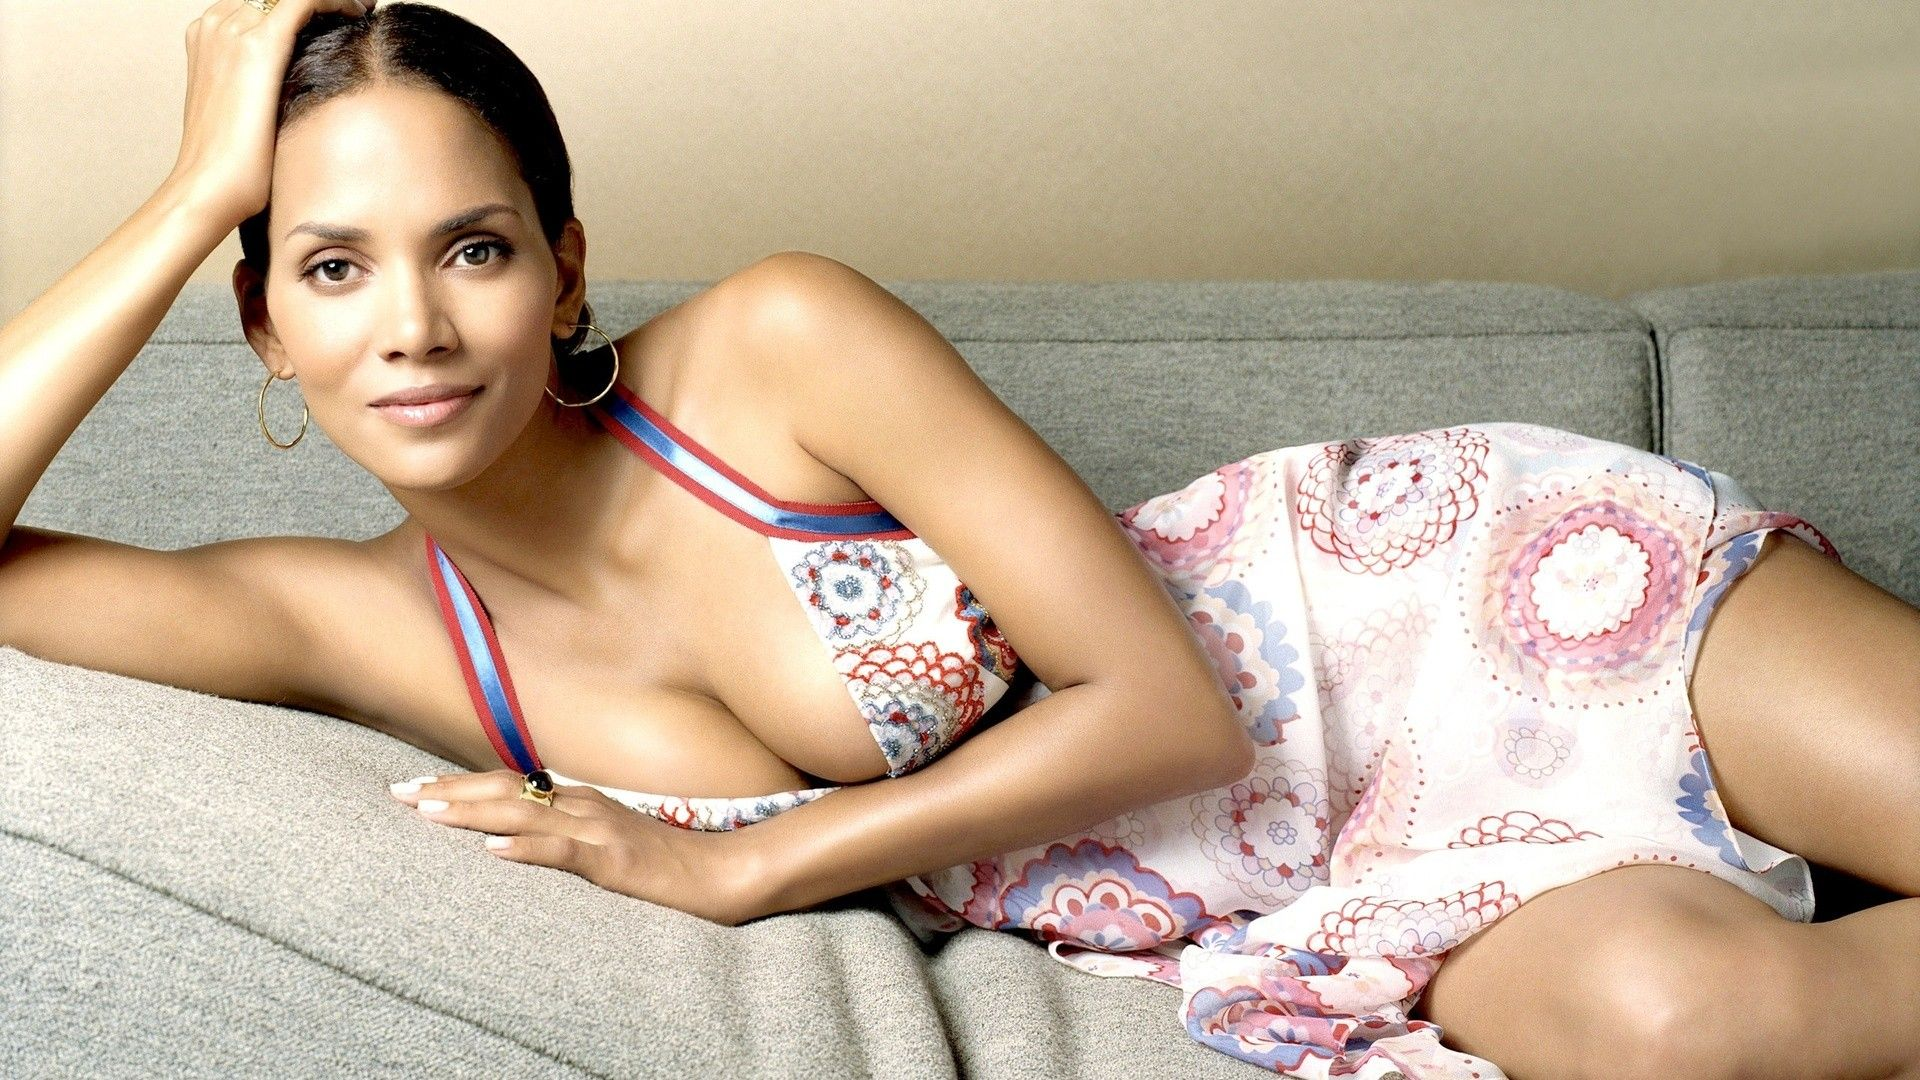 Halle Berry Wallpaper Halle Berry Celebrity Wallpapers Halle